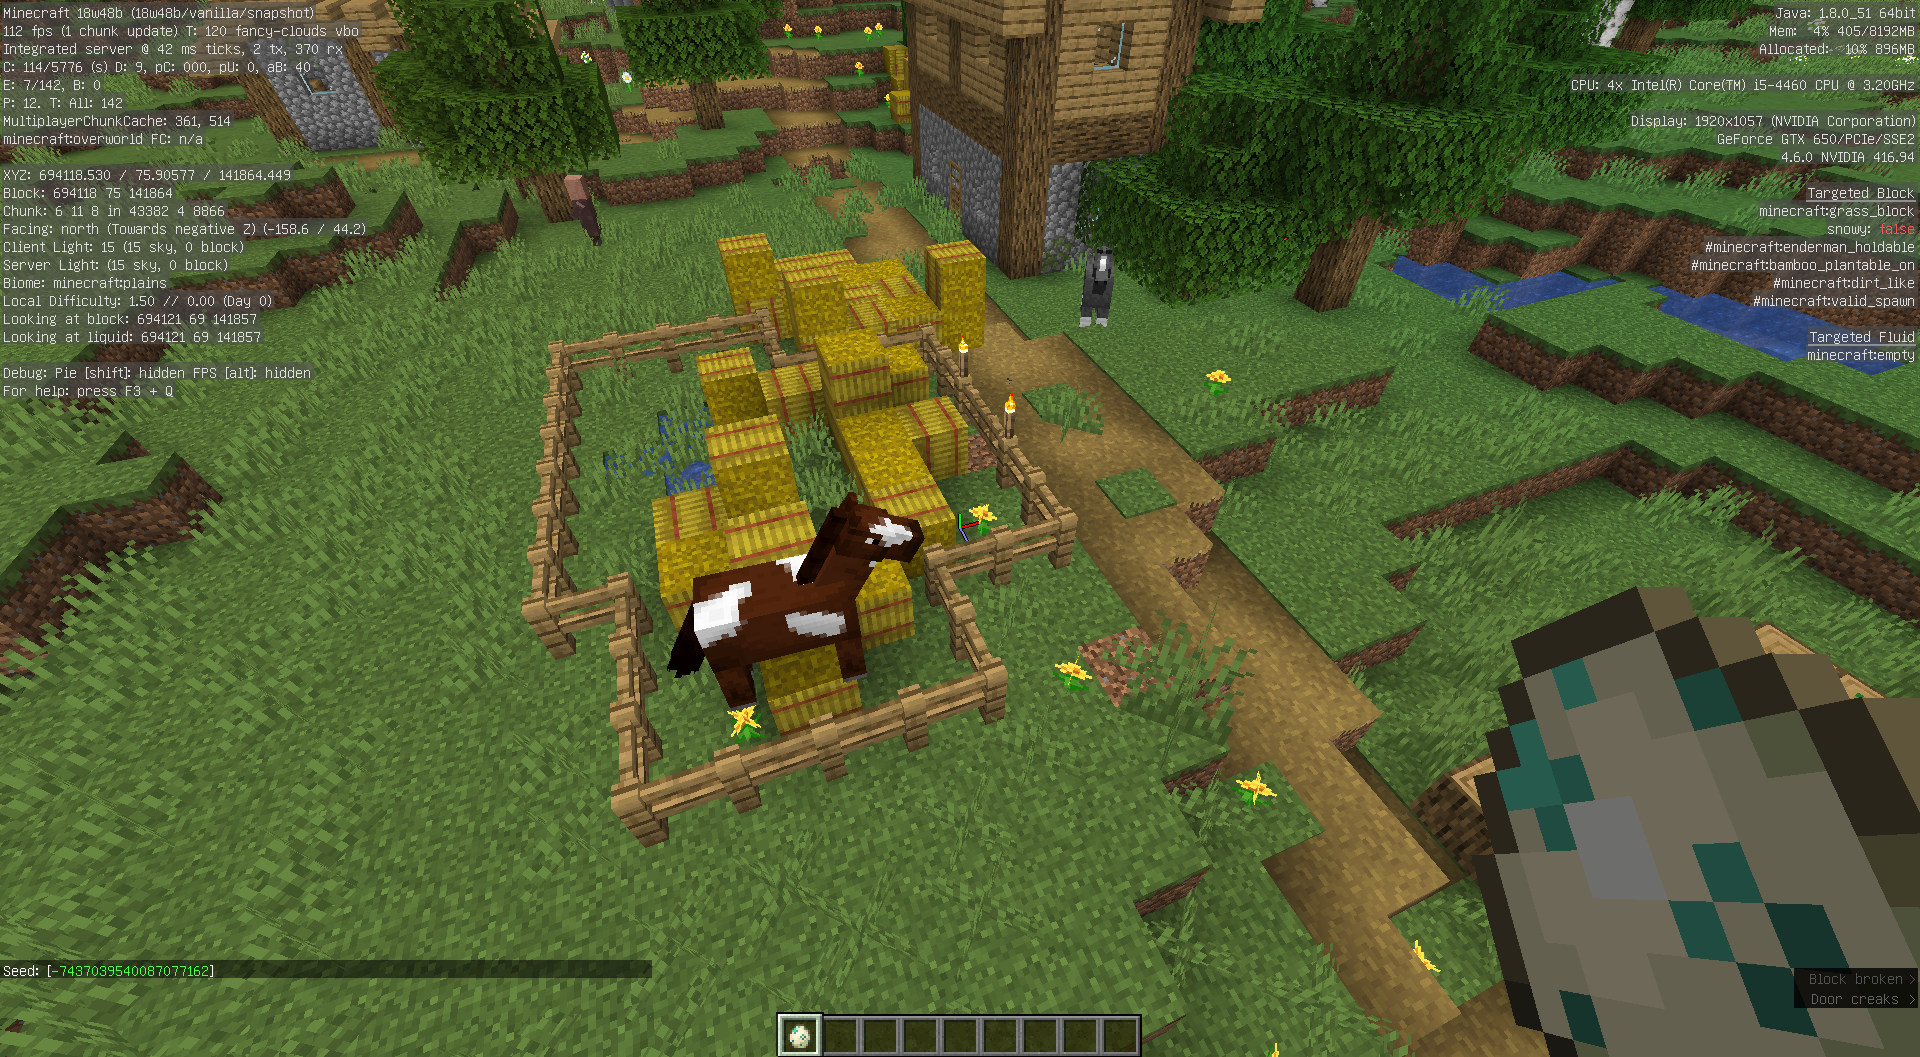 MC-140398] Hay bales, light posts and trees can generate inside